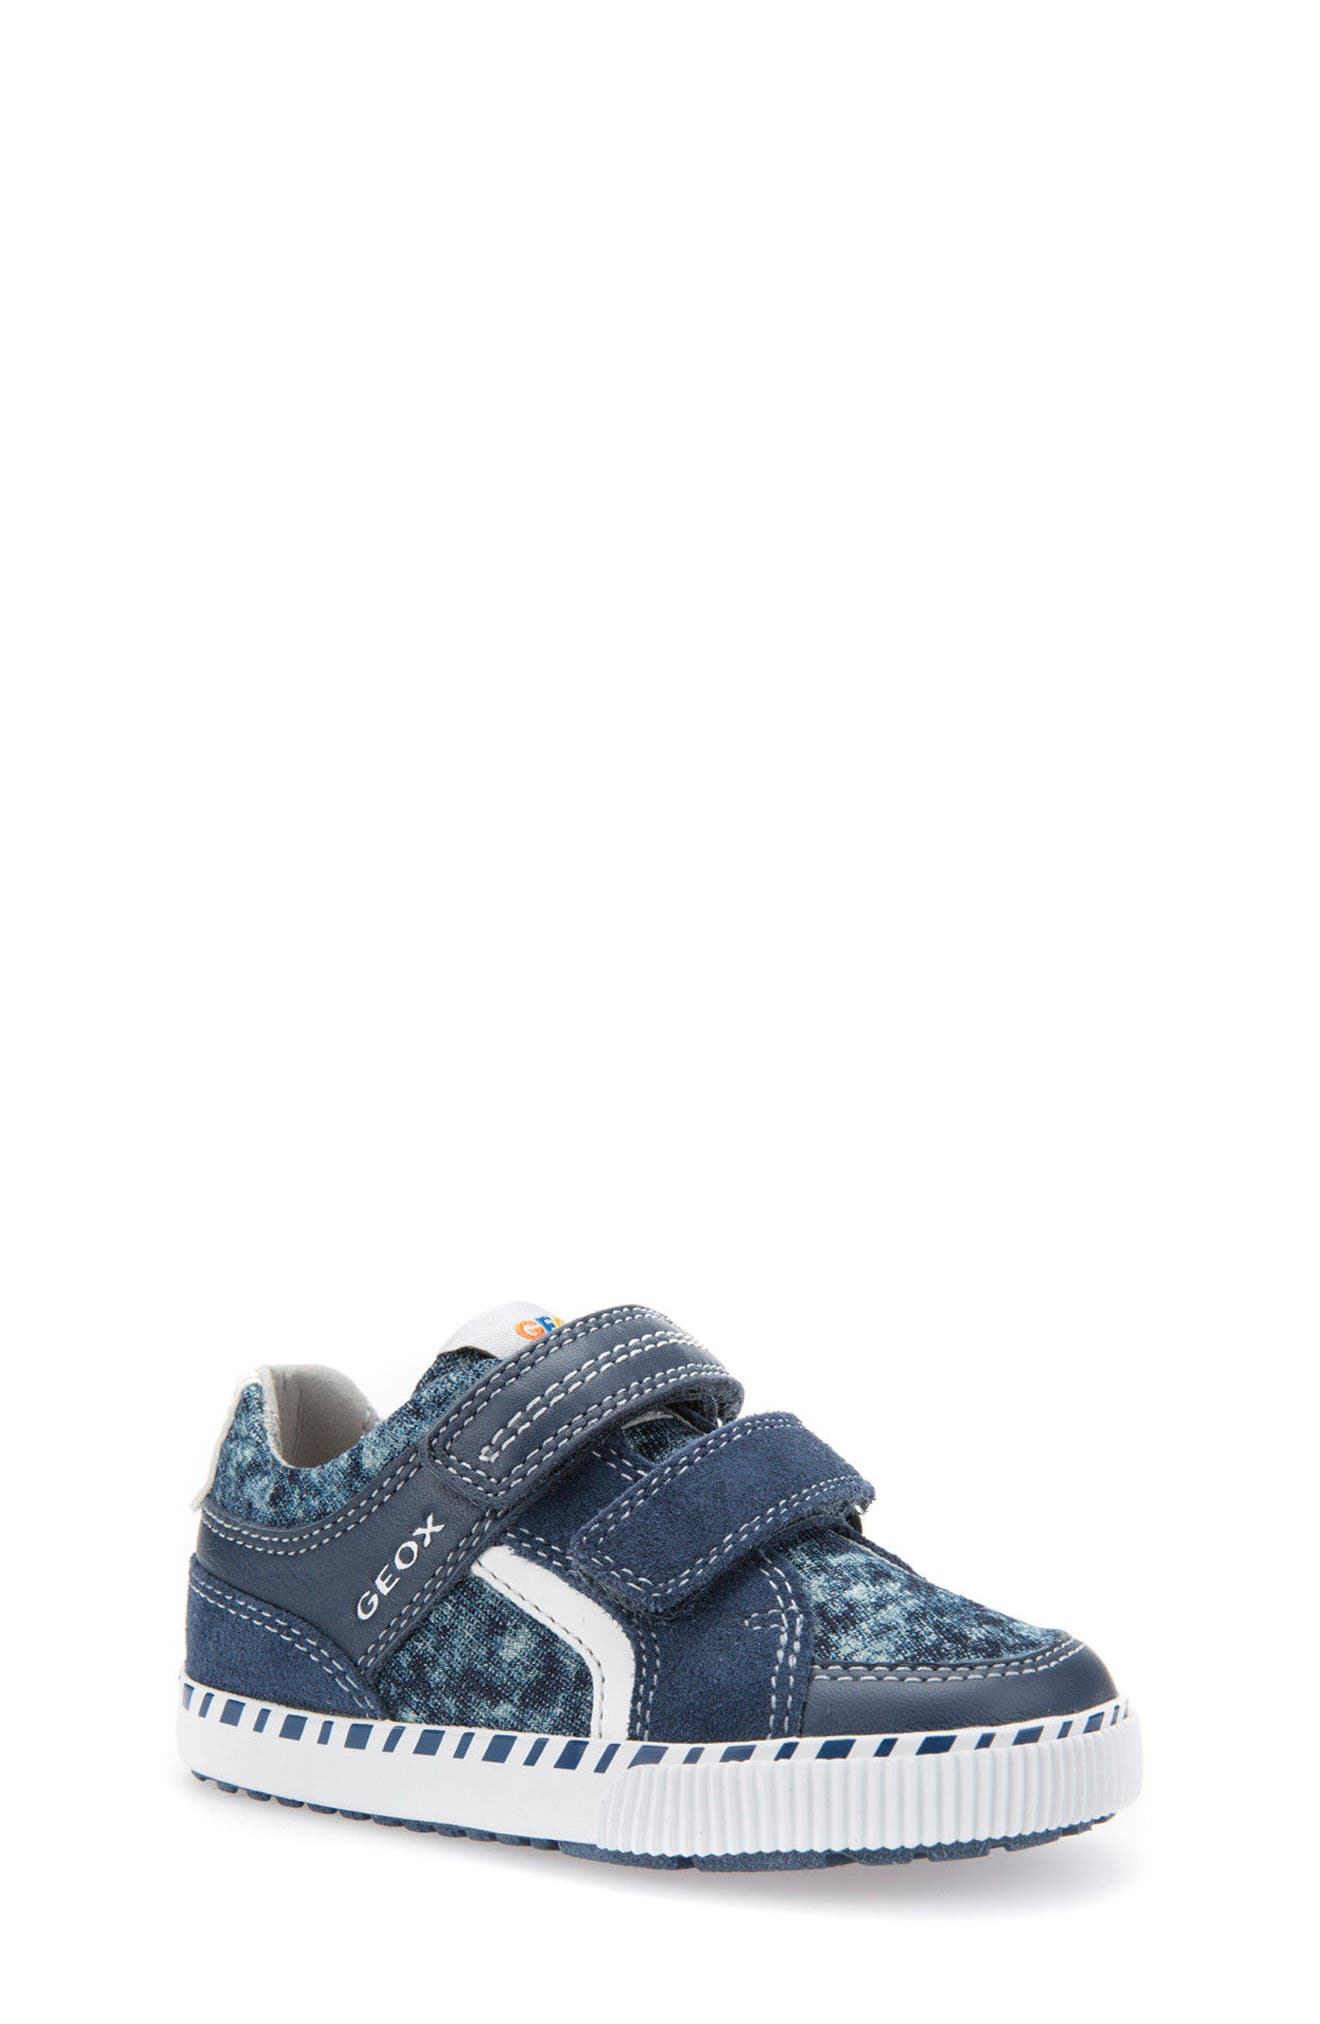 Kilwi Knit Sneaker,                             Main thumbnail 1, color,                             NAVY/ WHITE